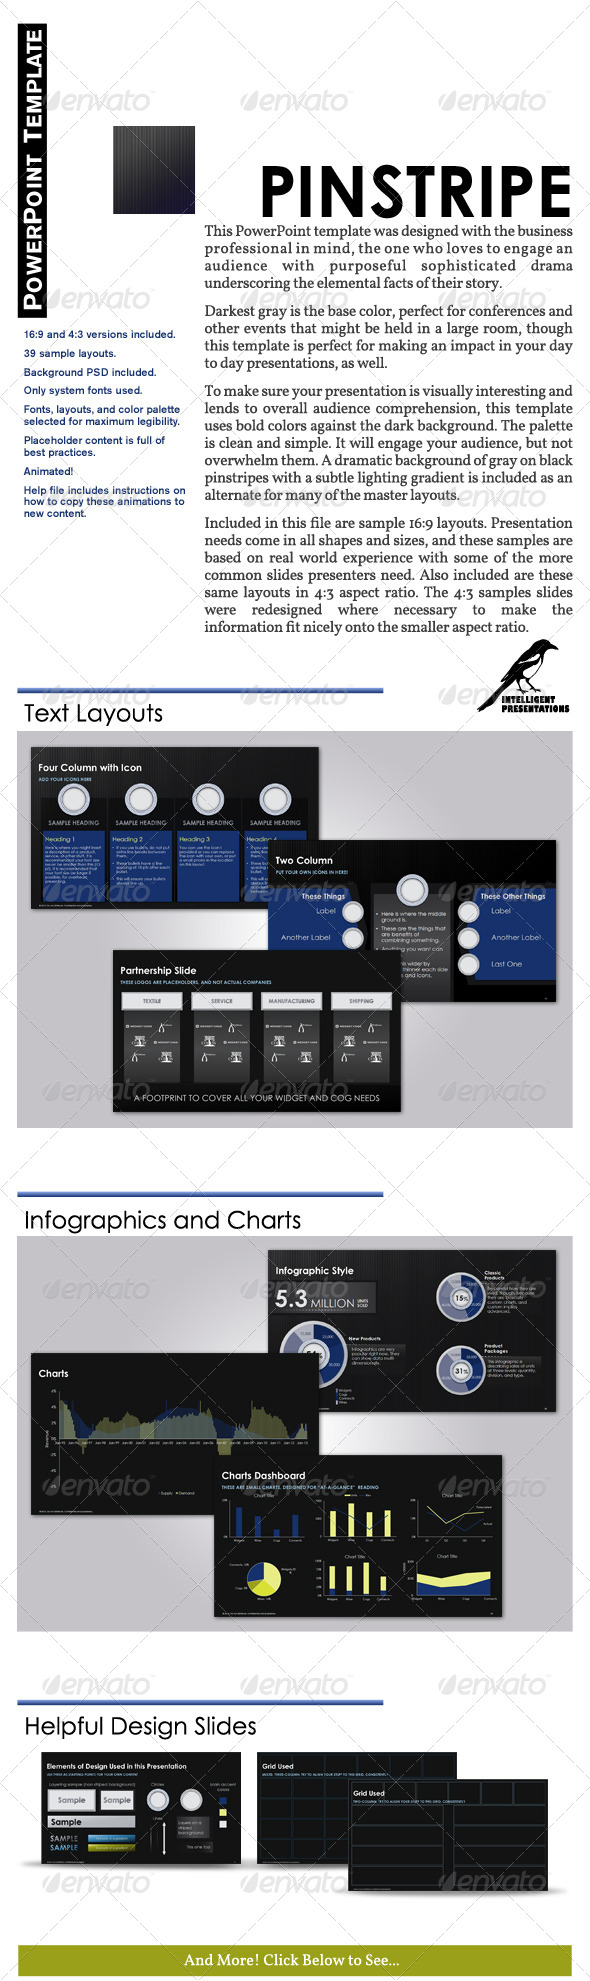 GraphicRiver Pinstripe PowerPoint Template 5356888